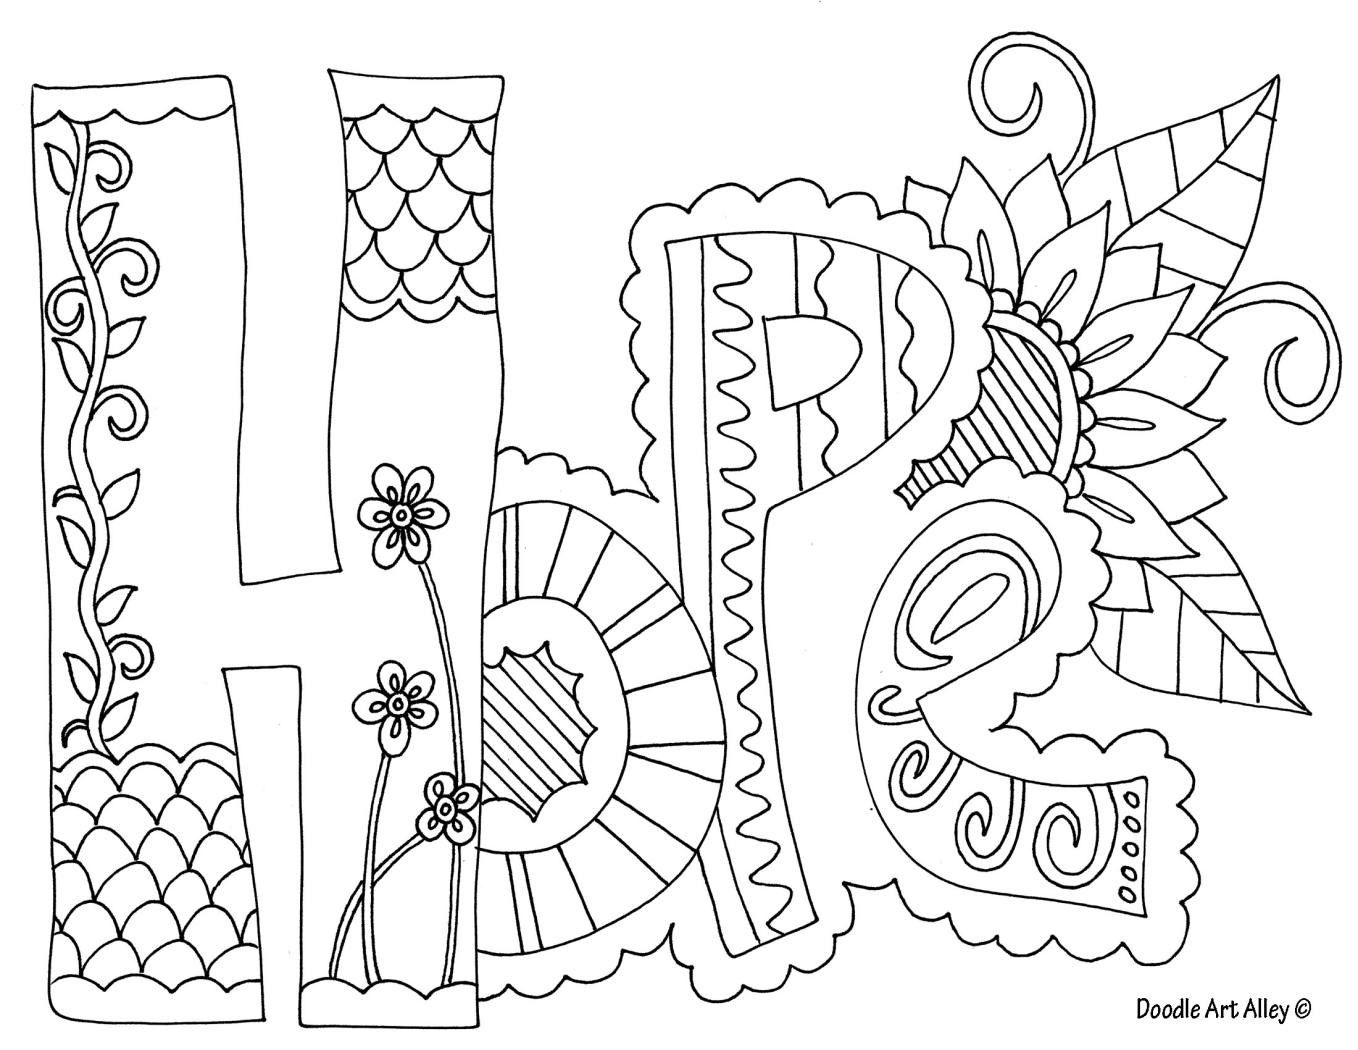 hope coloring page to encourage discussion in a creative setting